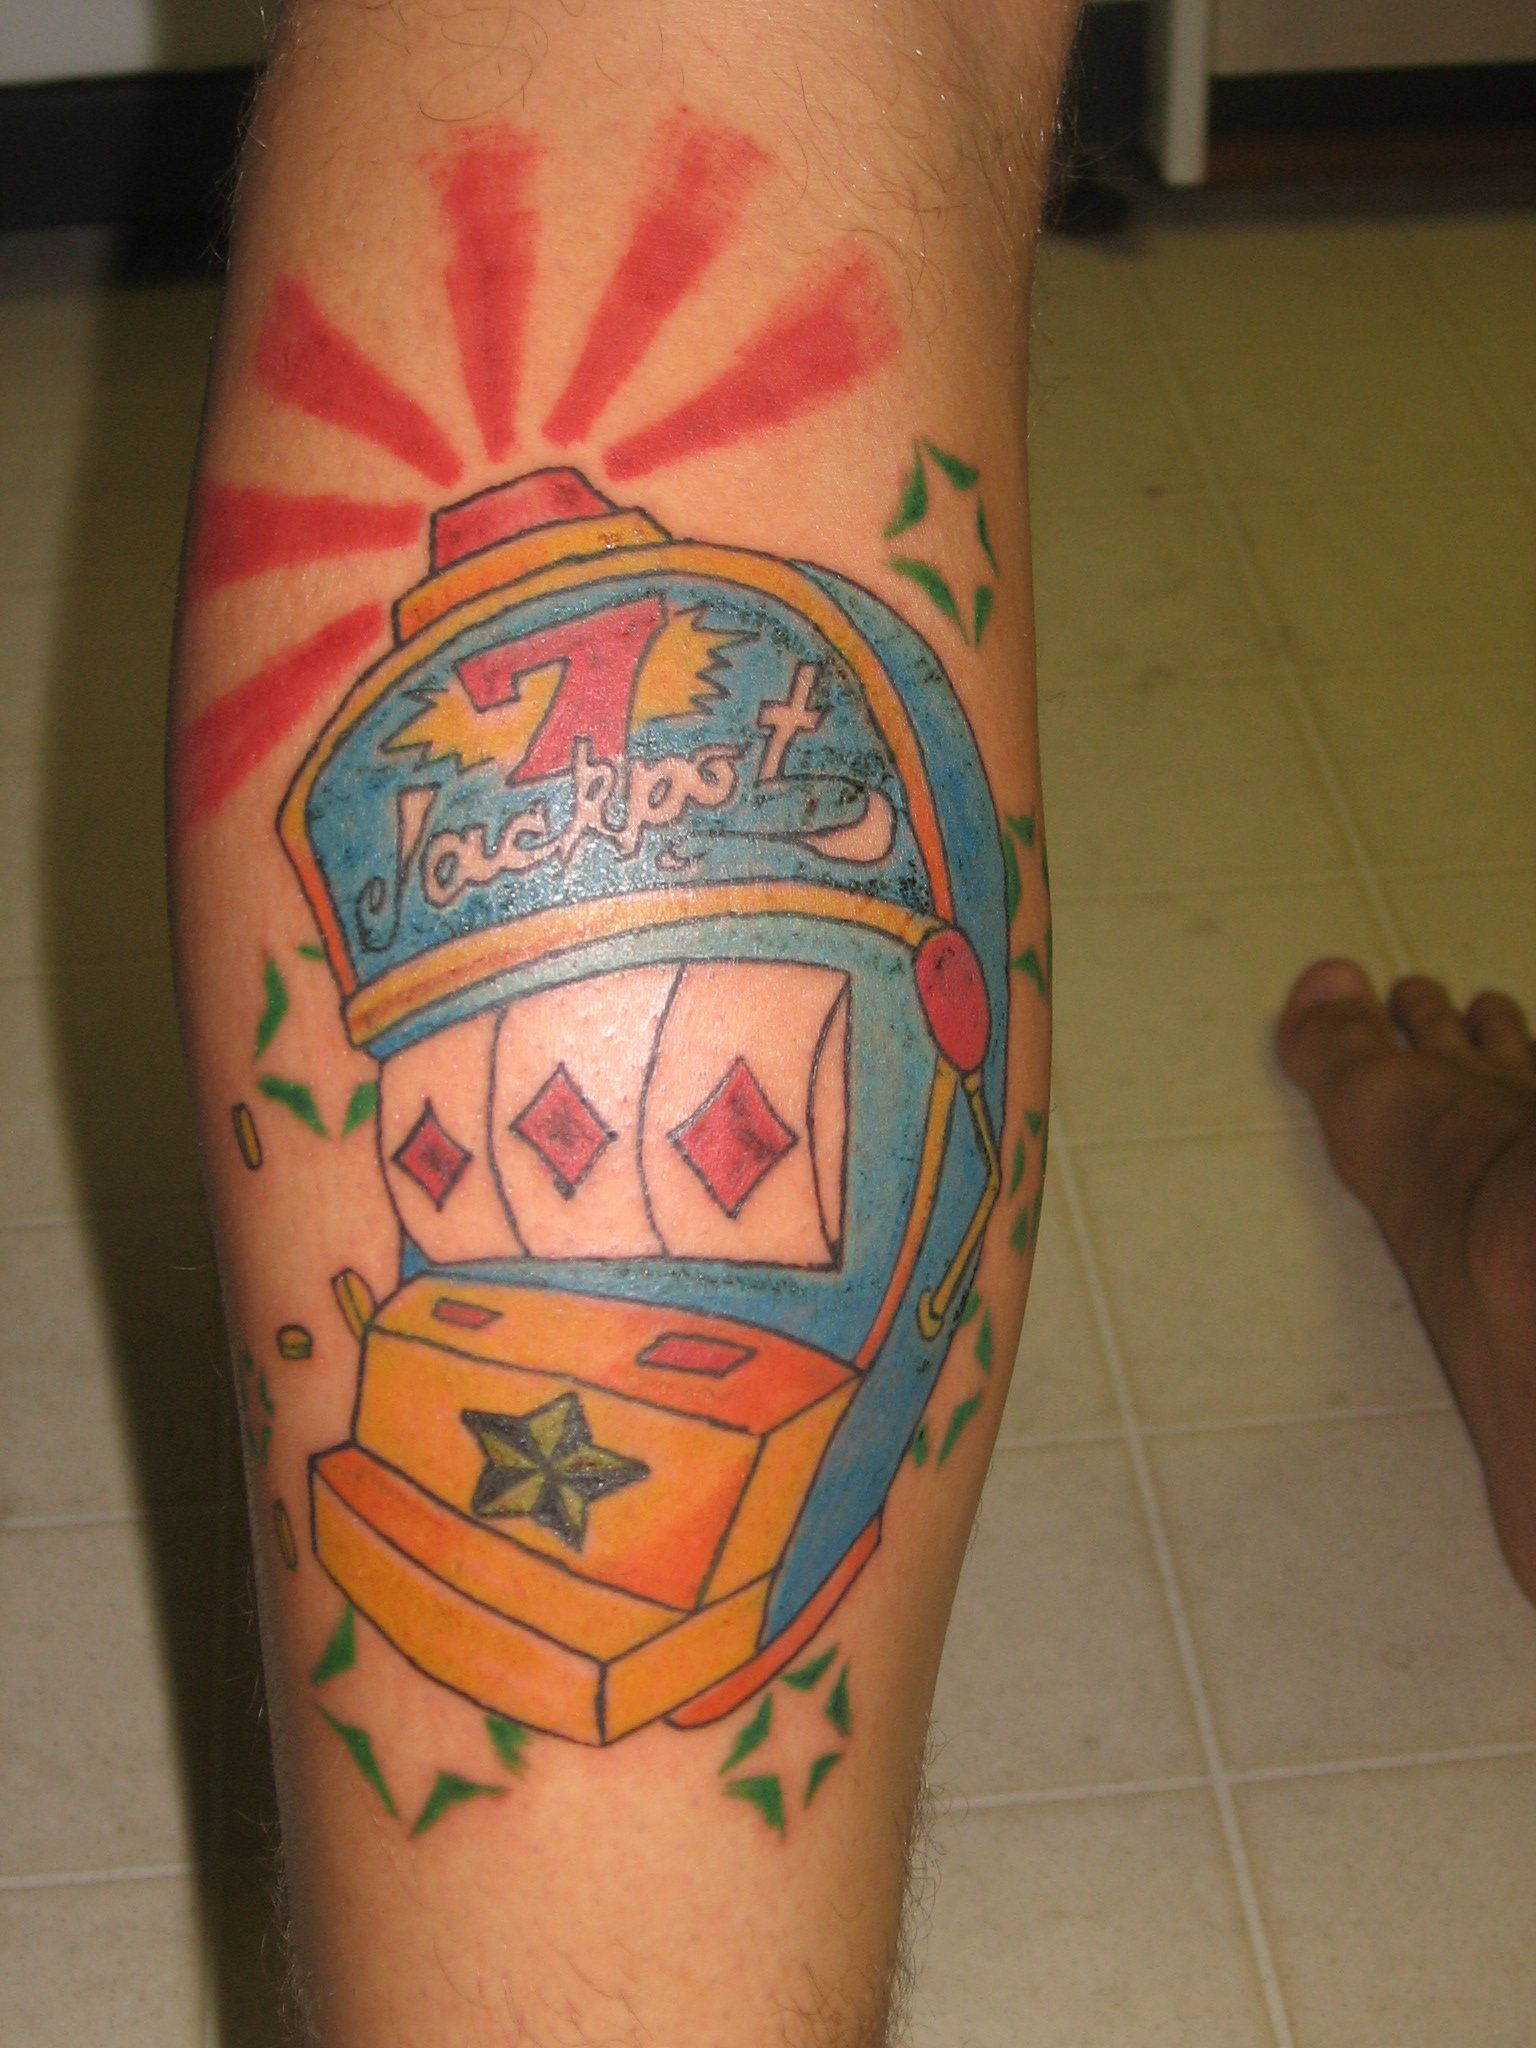 Slot machine leg tattoo